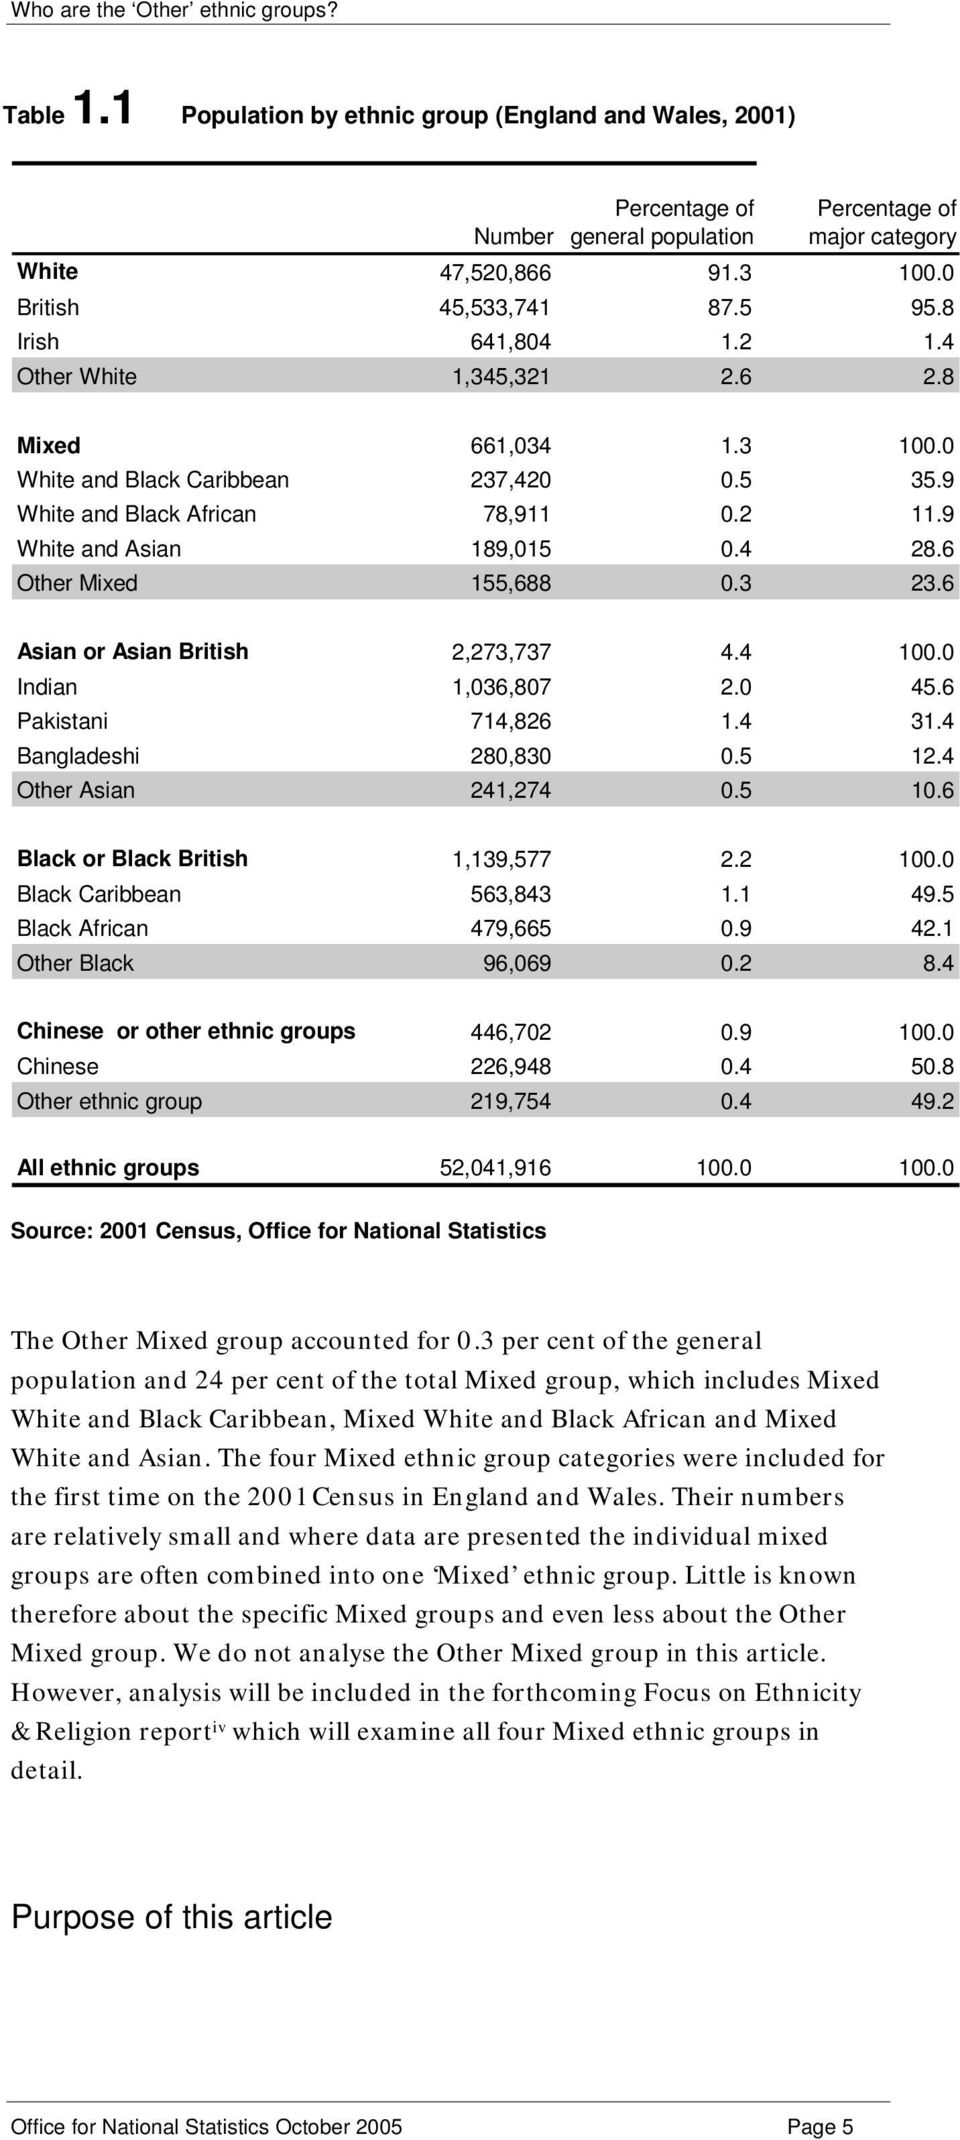 6 Other Mixed 155,688 0.3 23.6 Asian or Asian British 2,273,737 4.4 100.0 Indian 1,036,807 2.0 45.6 Pakistani 714,826 1.4 31.4 Bangladeshi 280,830 0.5 12.4 Other Asian 241,274 0.5 10.